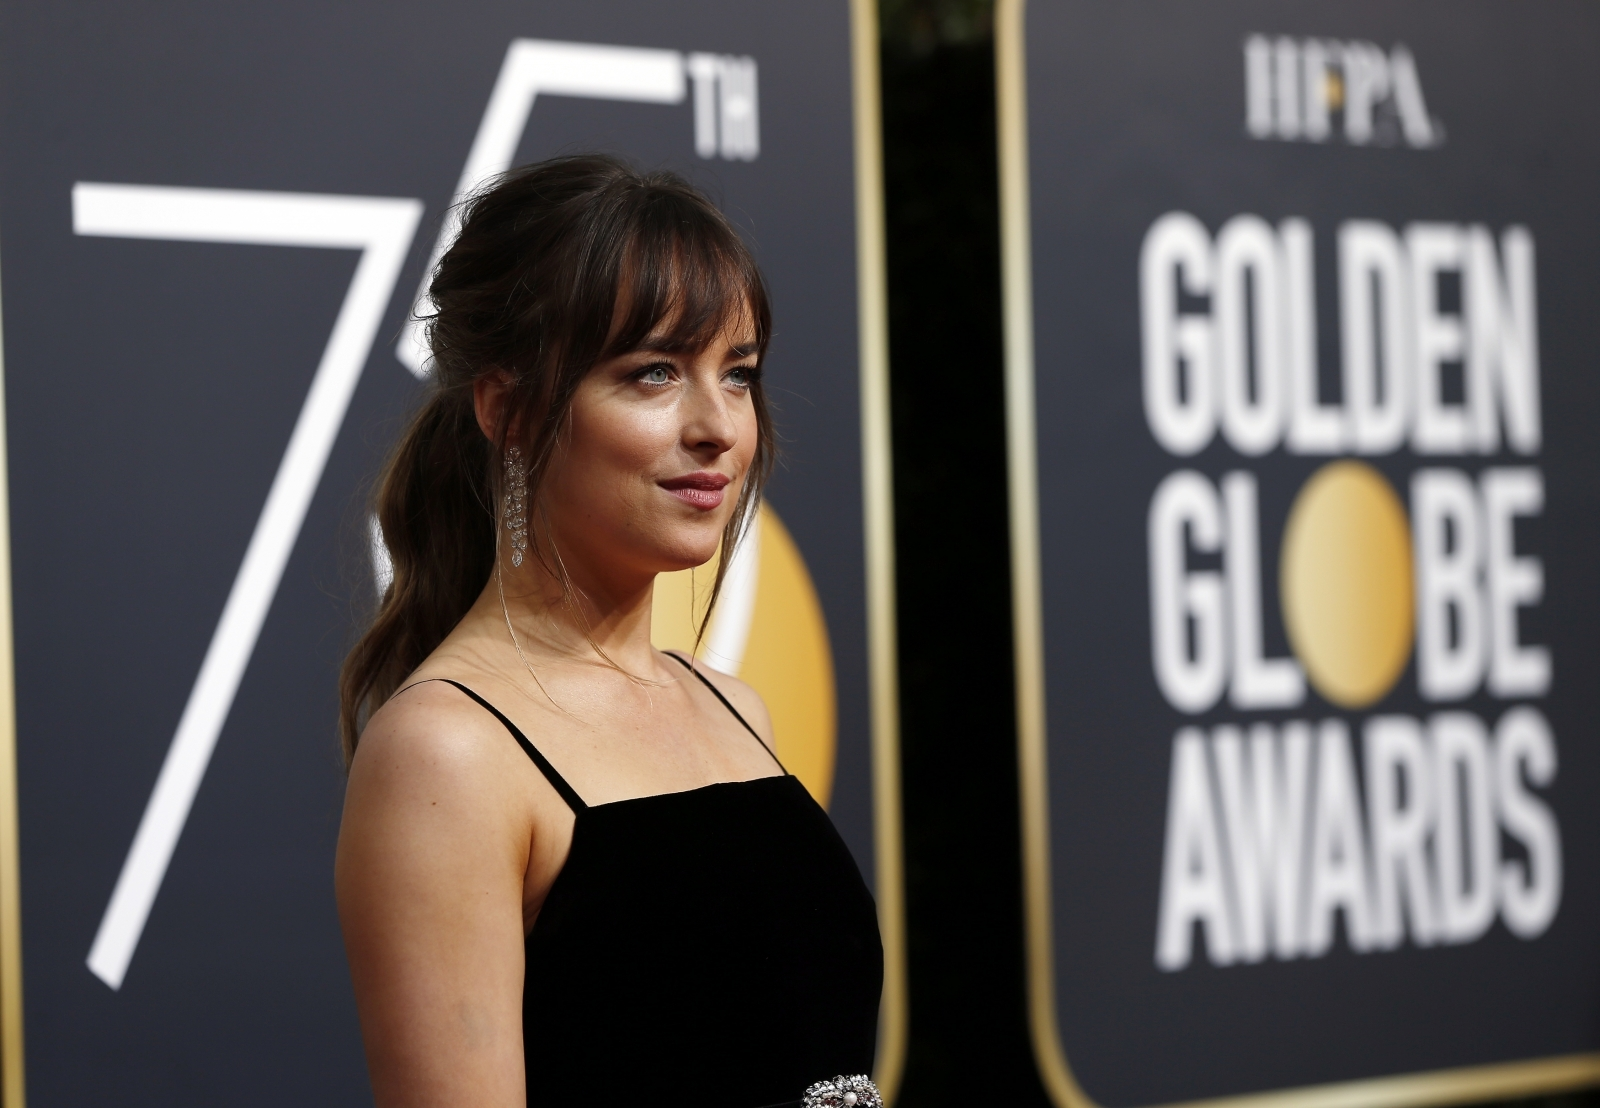 Dakota Johnson Talks About Filming Sex Scenes with Jamie Dornan